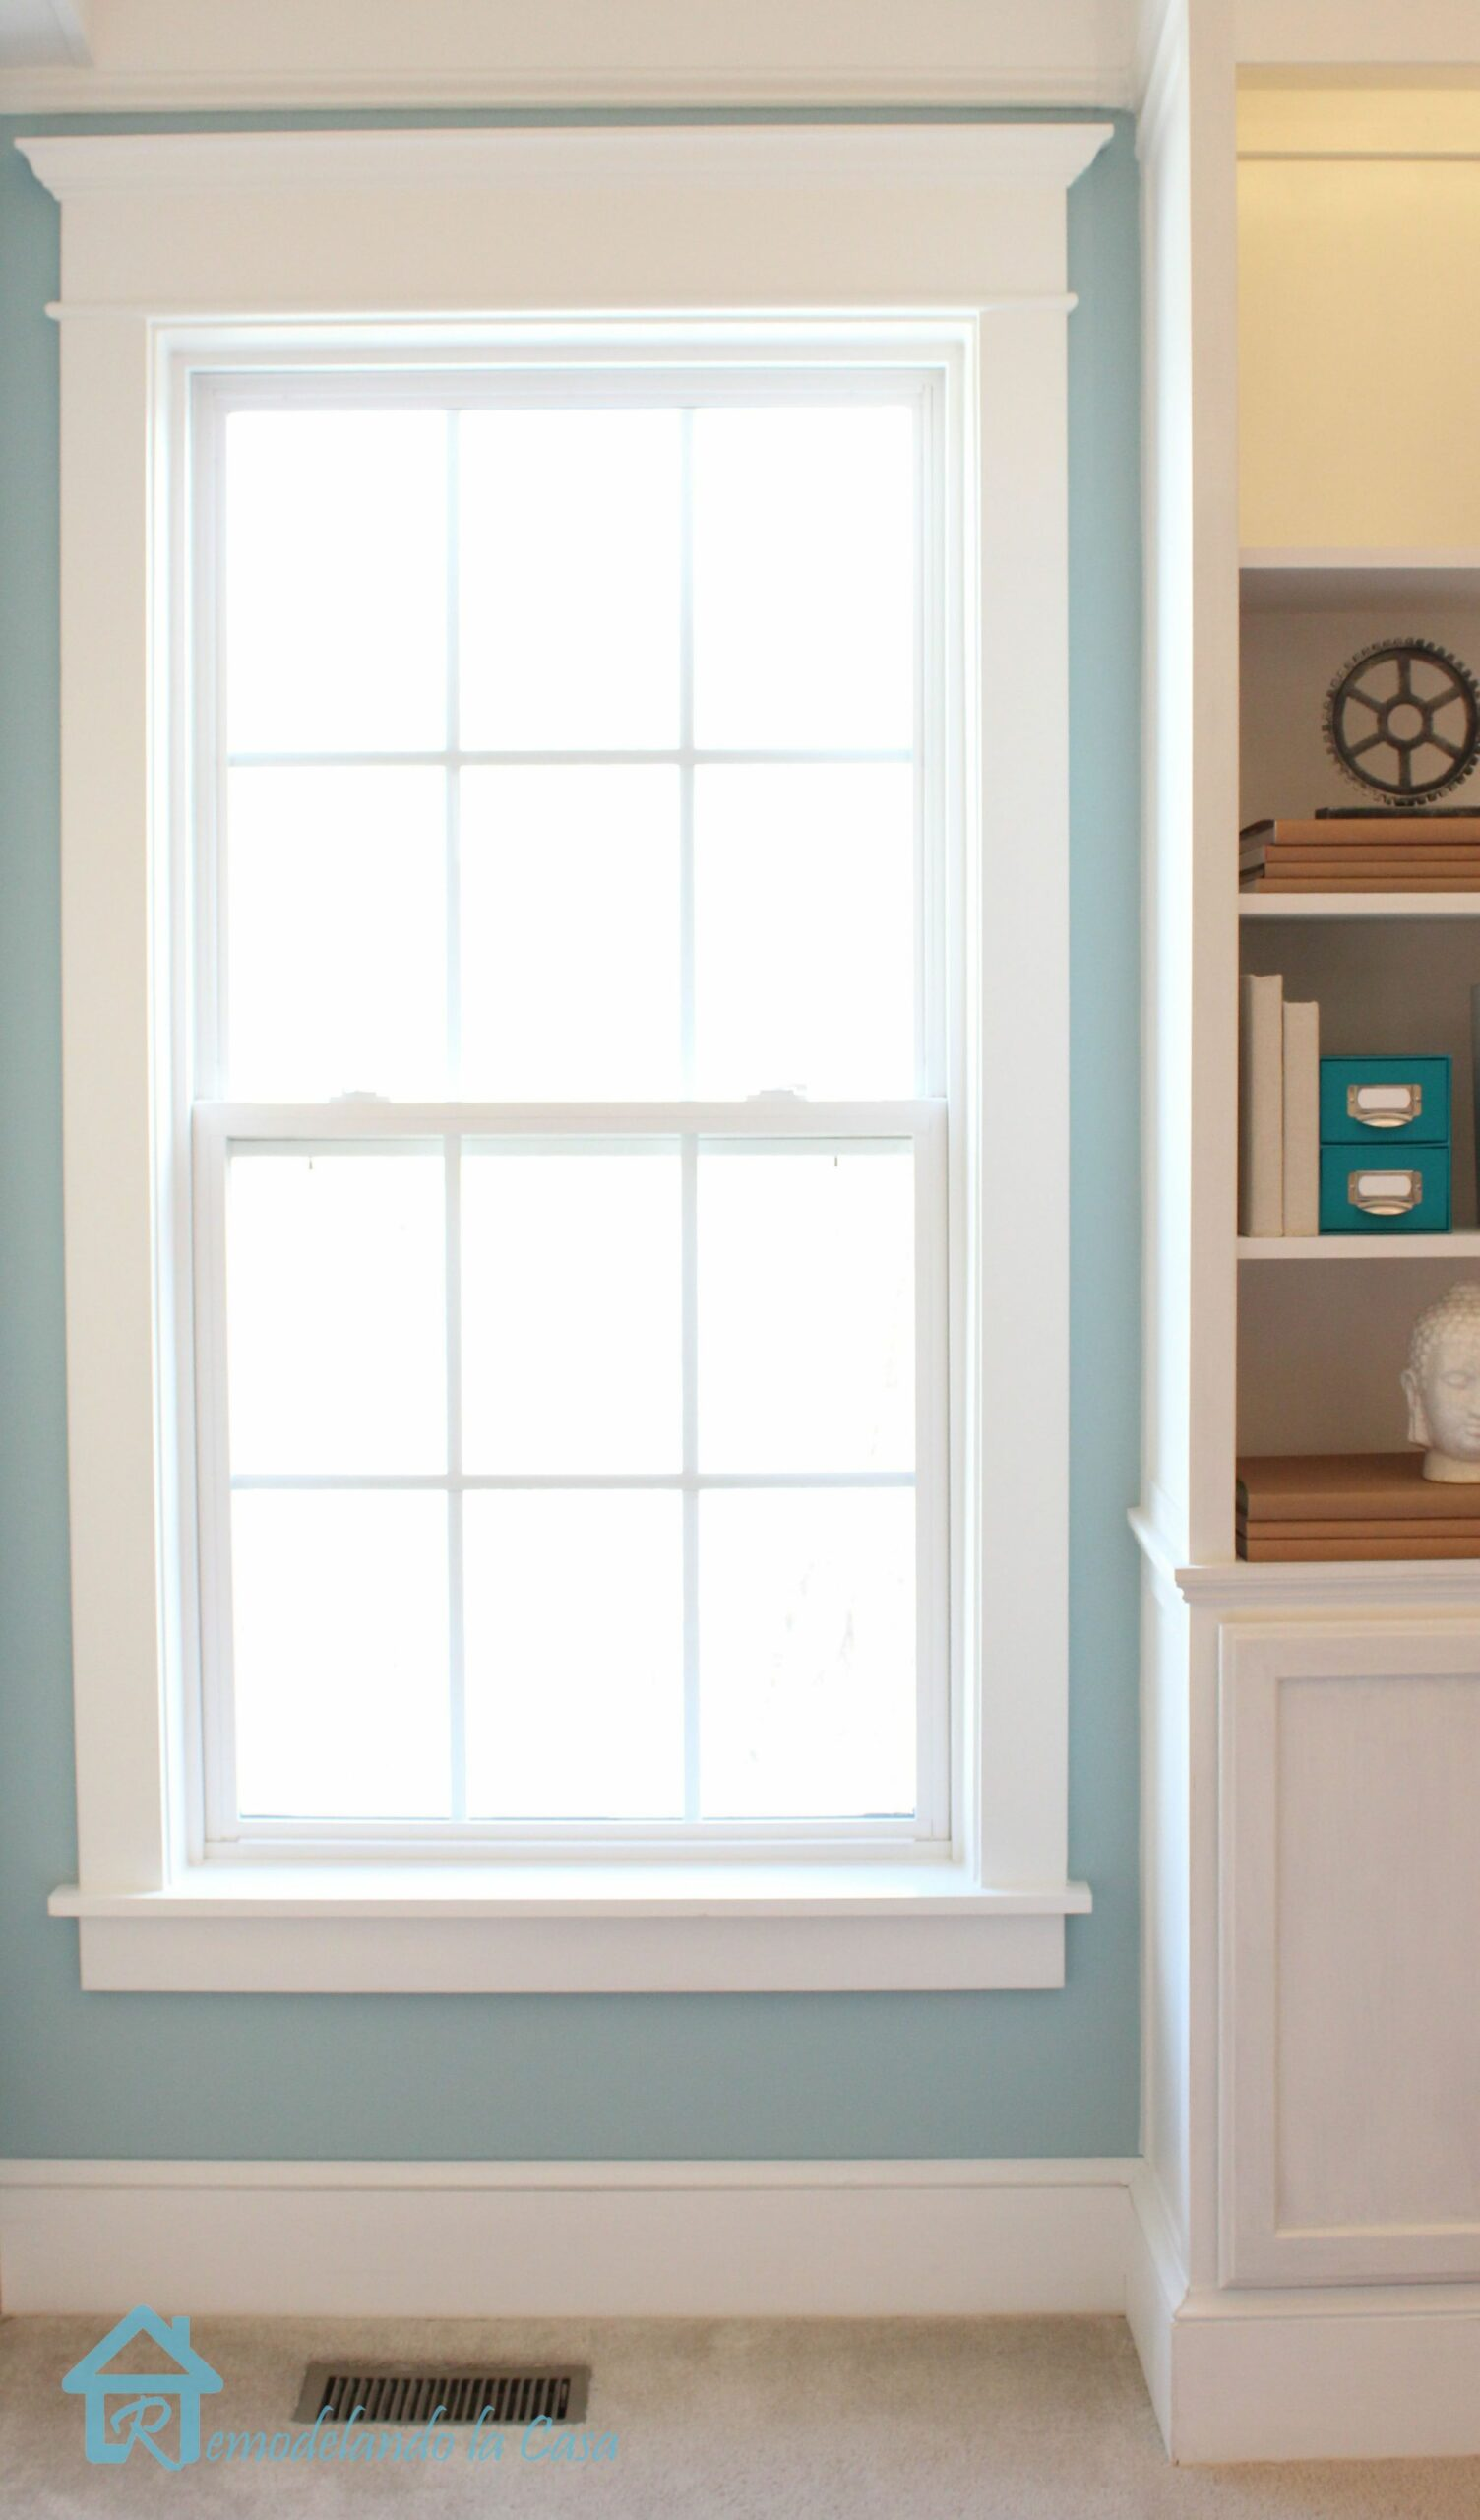 12 Best Window Trim Ideas, Design and Remodel to Inspire You (With ..